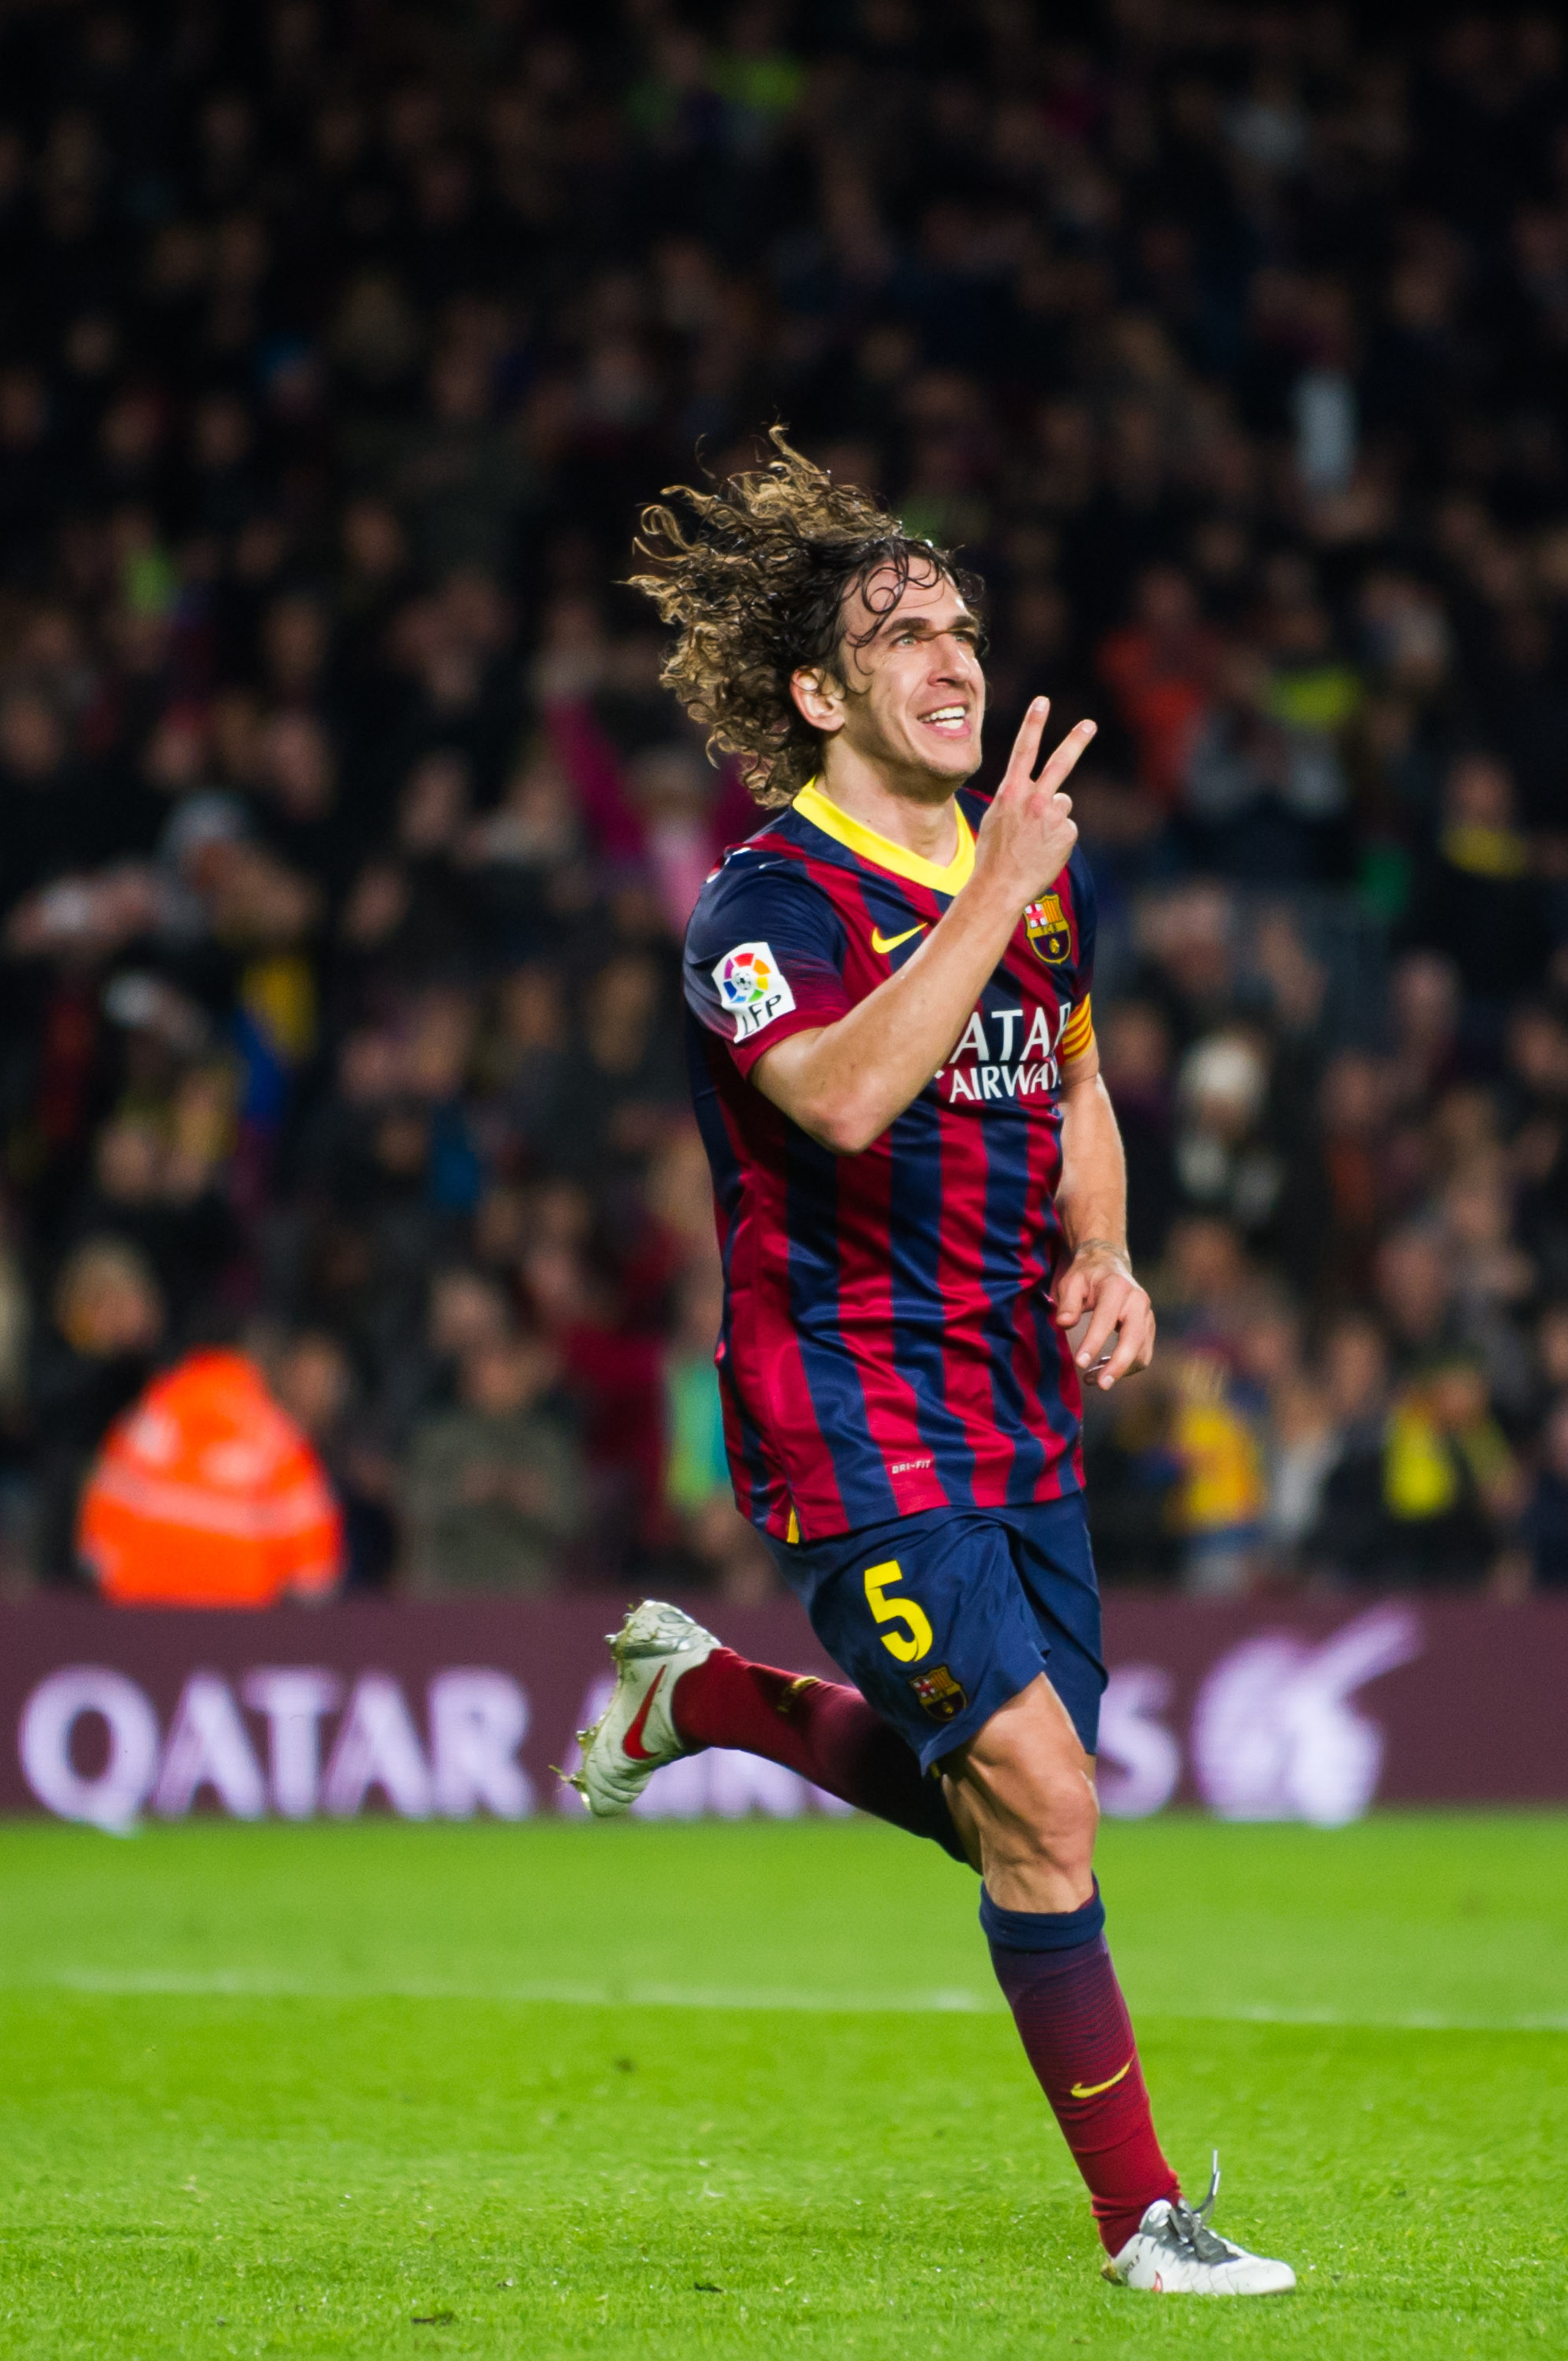 Carles Puyol to leave Barcelona at the end of the season